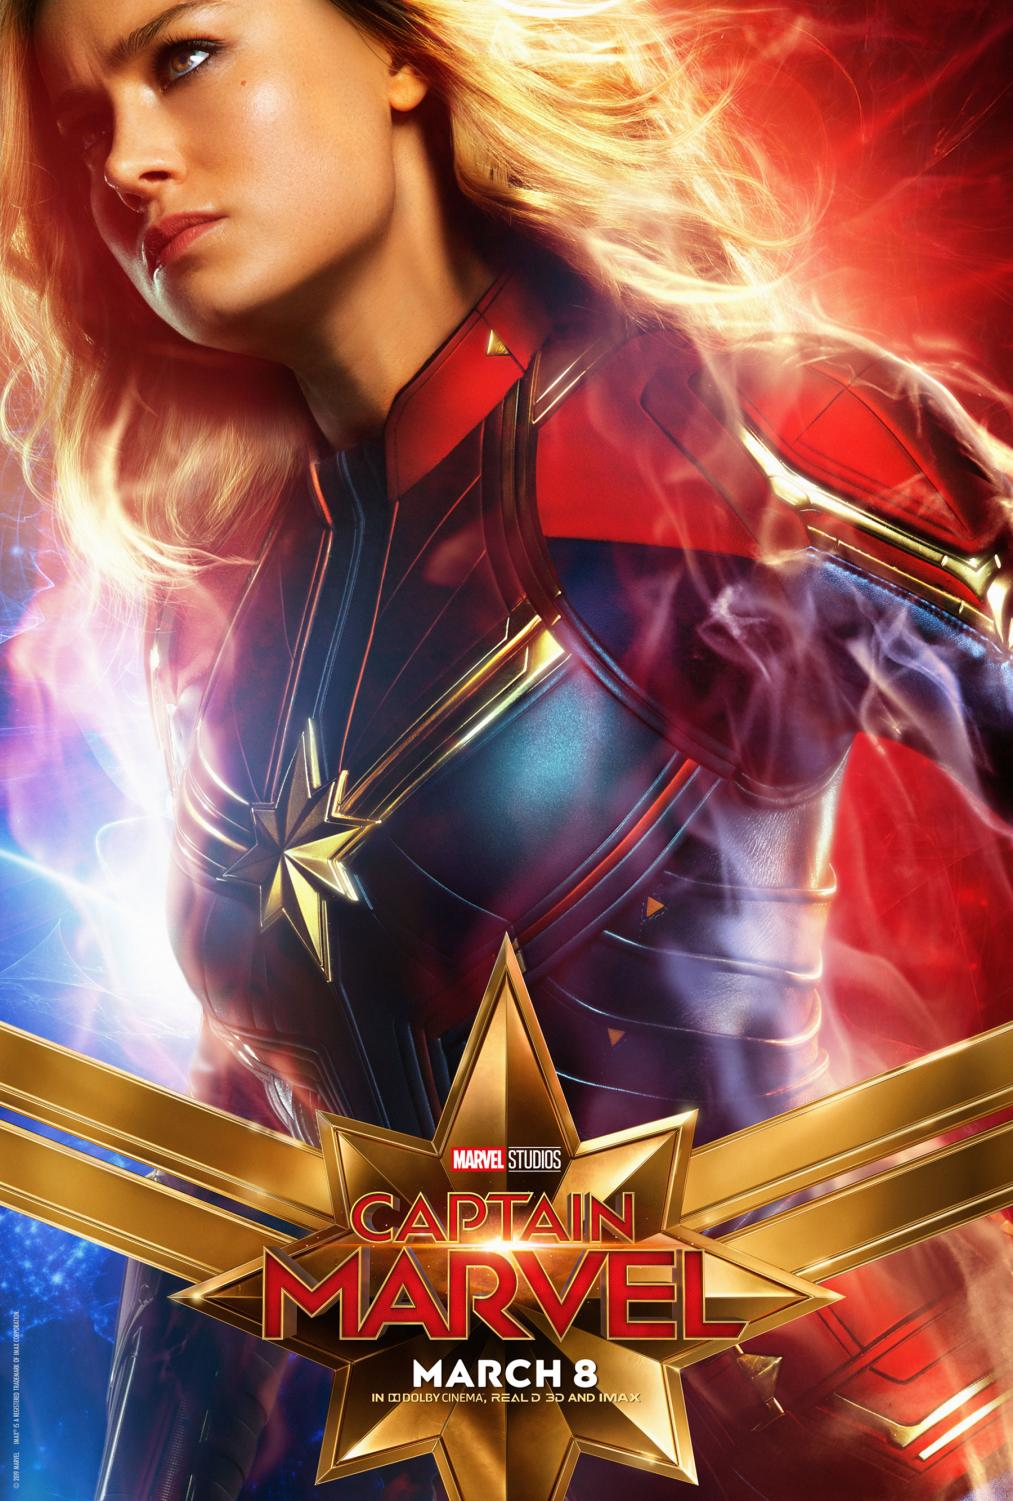 A HERo \\ Captain Marvel breaks boundaries as the first female-led superhero film from the Marvel Cinematic Universe. However, due to this, she faces unjust scrutiny for not being feminine enough.